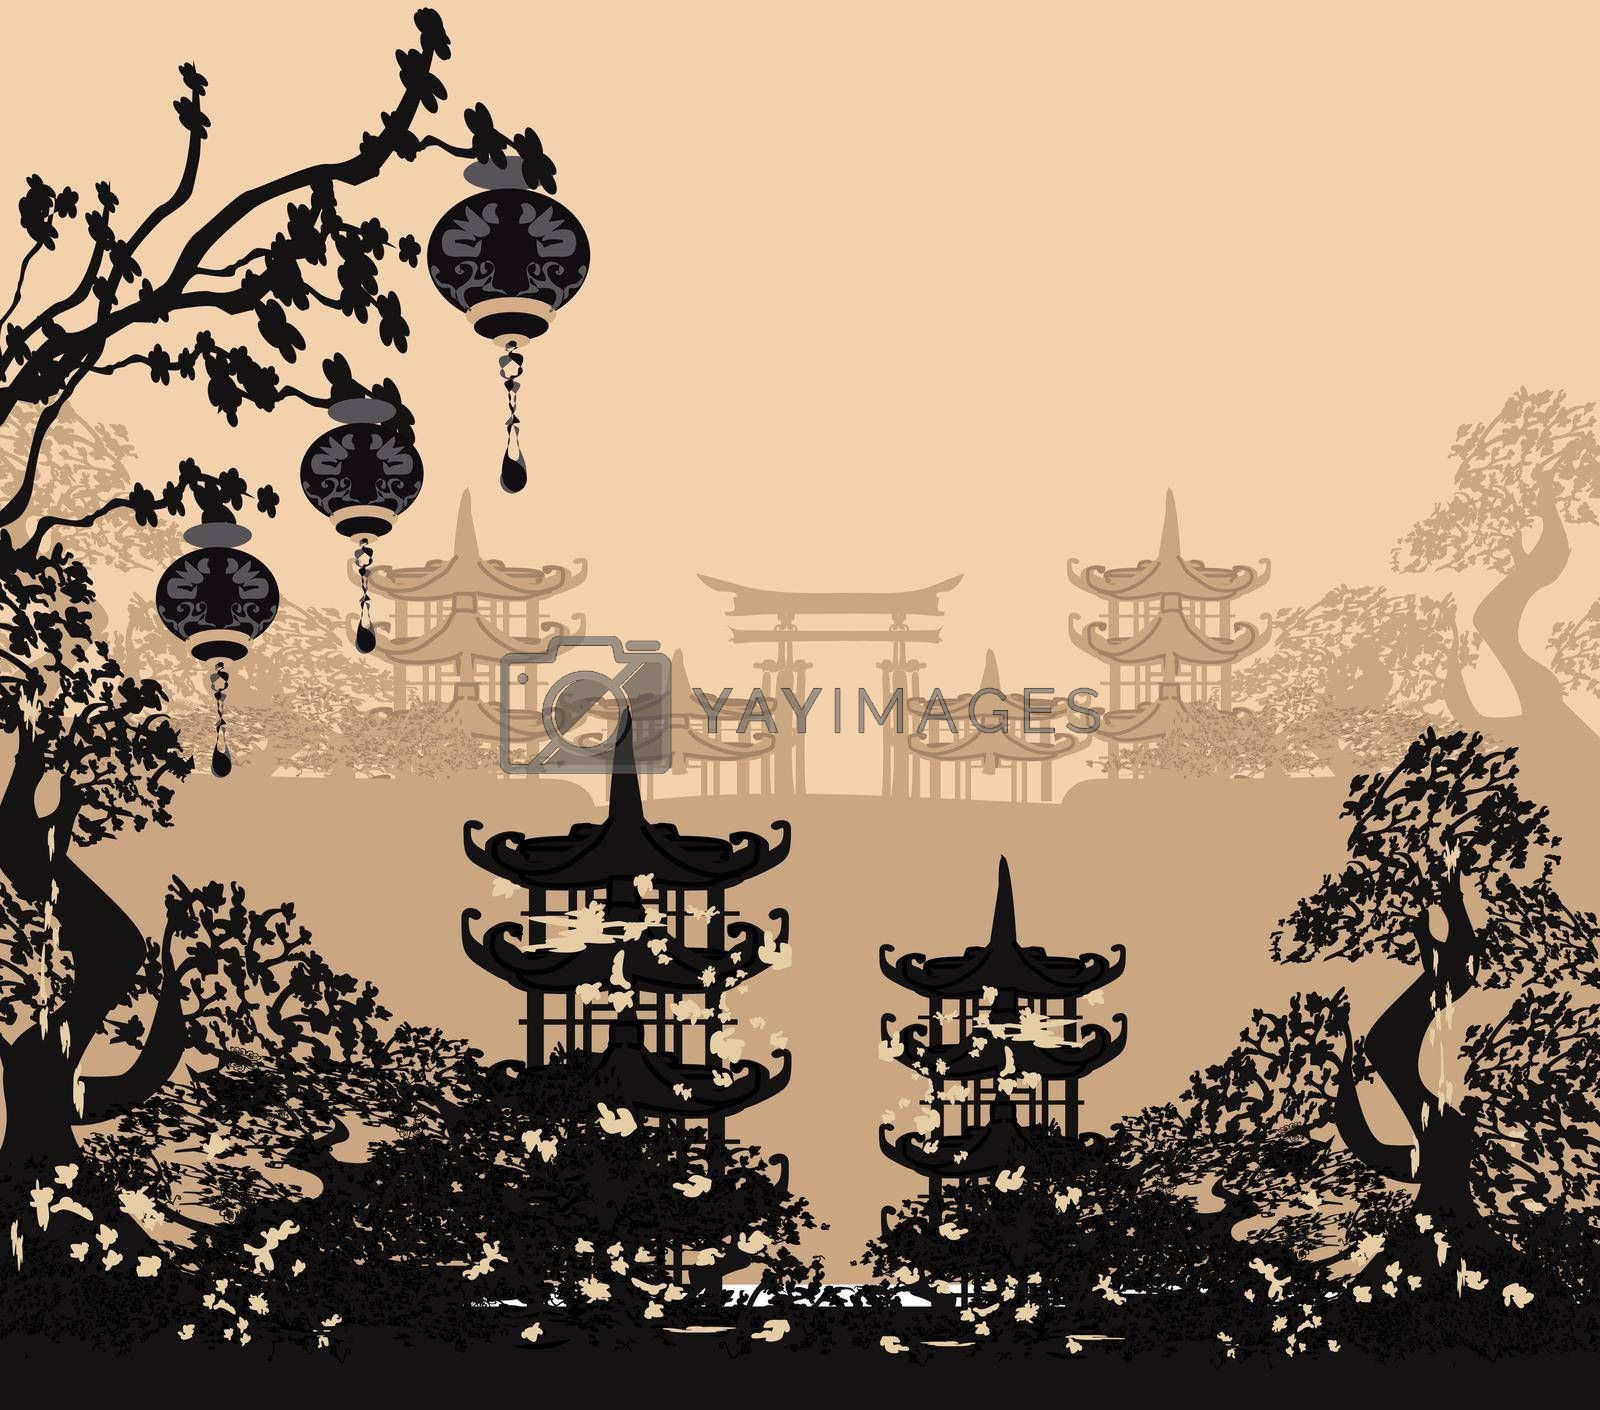 Royalty free image of Asian buildings and cherry blossoms by JackyBrown